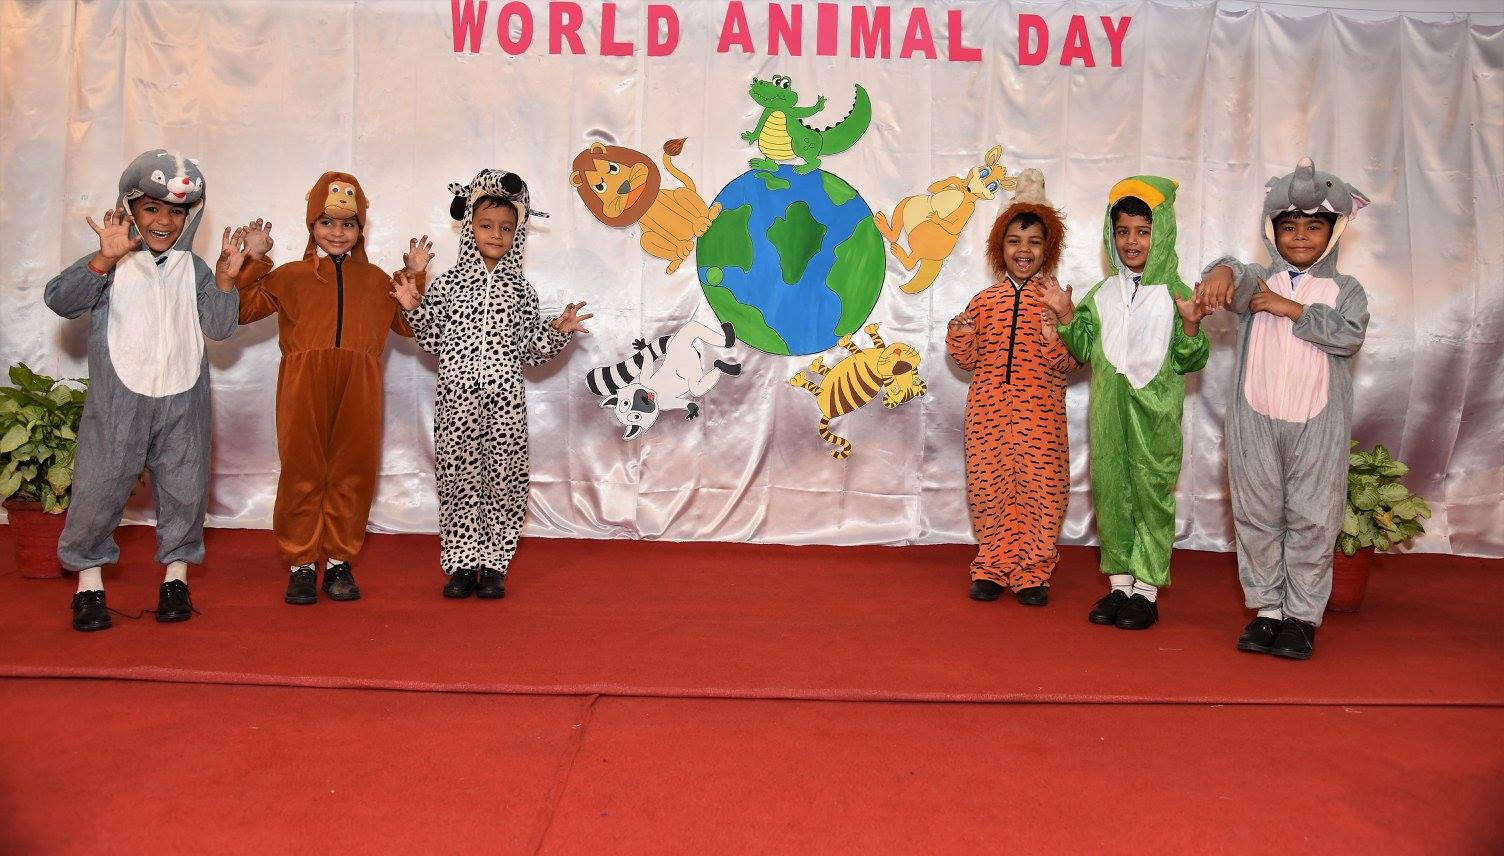 World Animal Day Wishes Pics